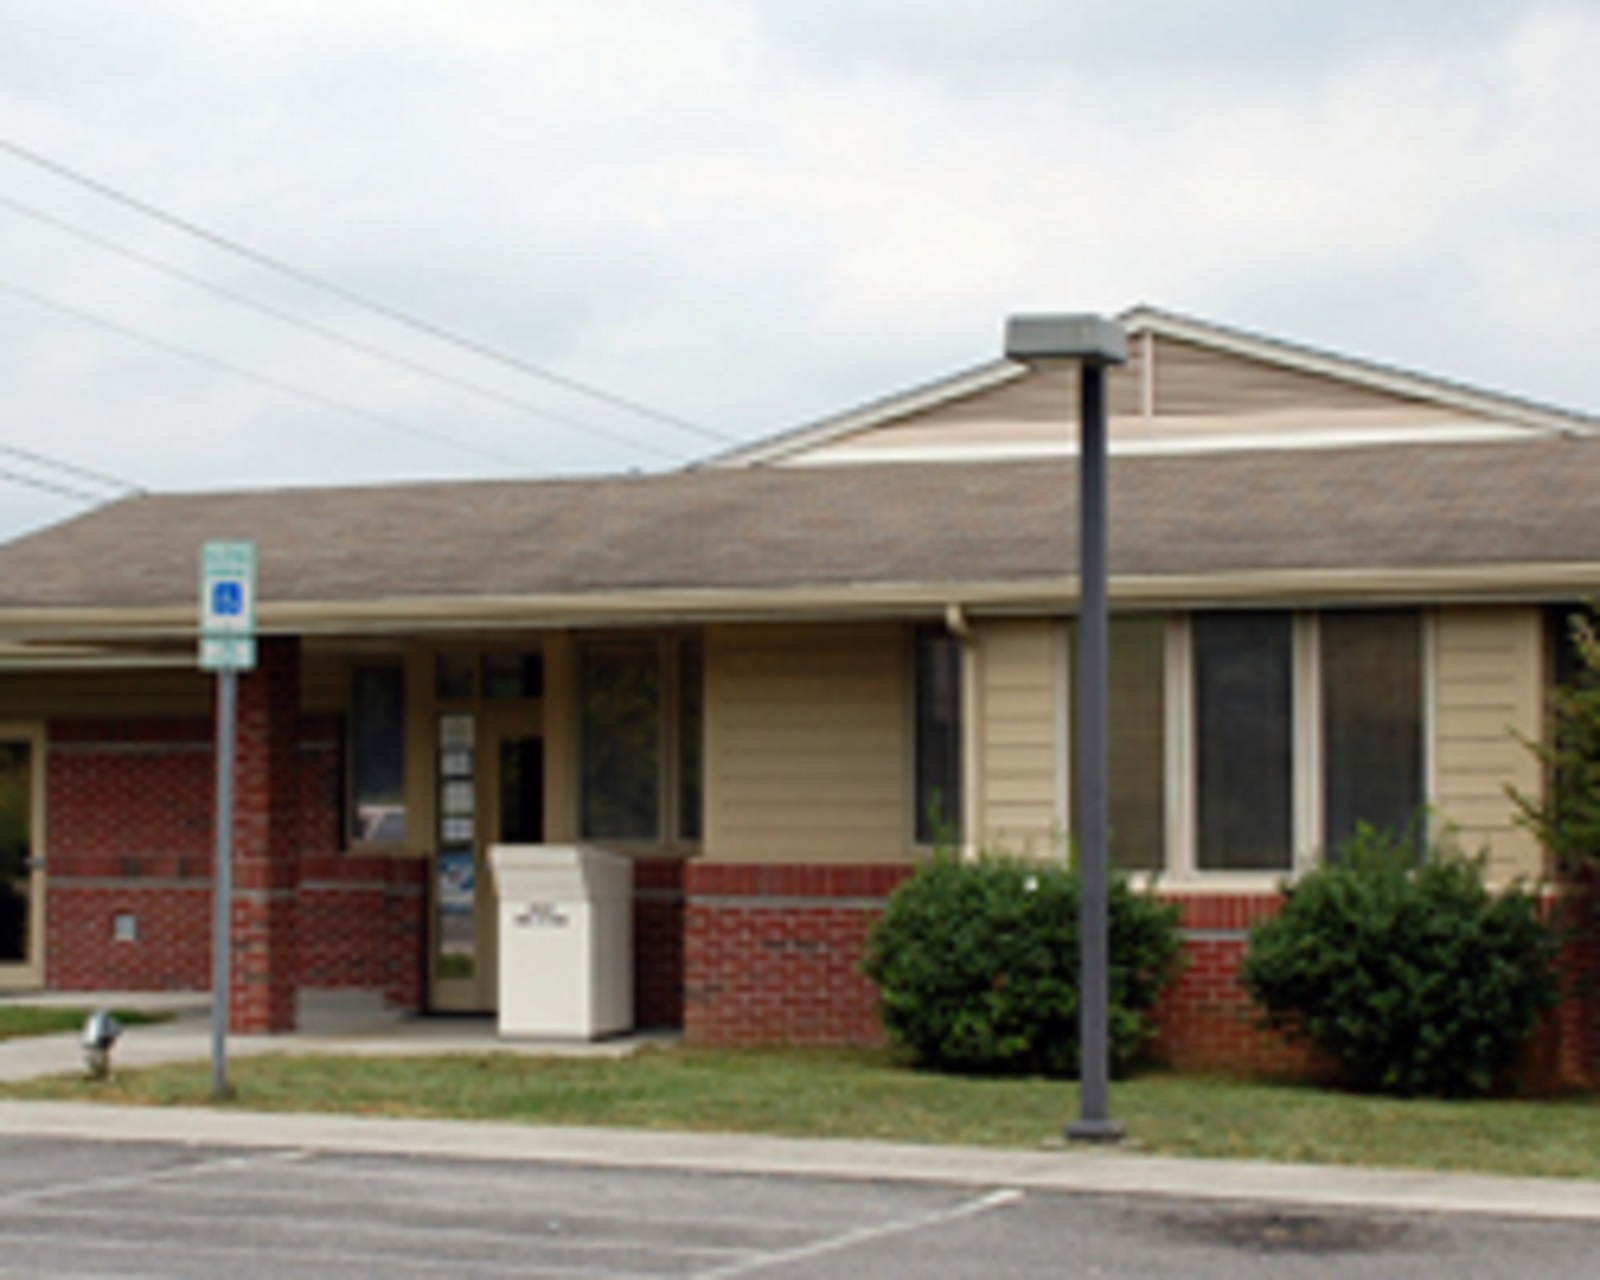 Photo of Bean Station Public Library